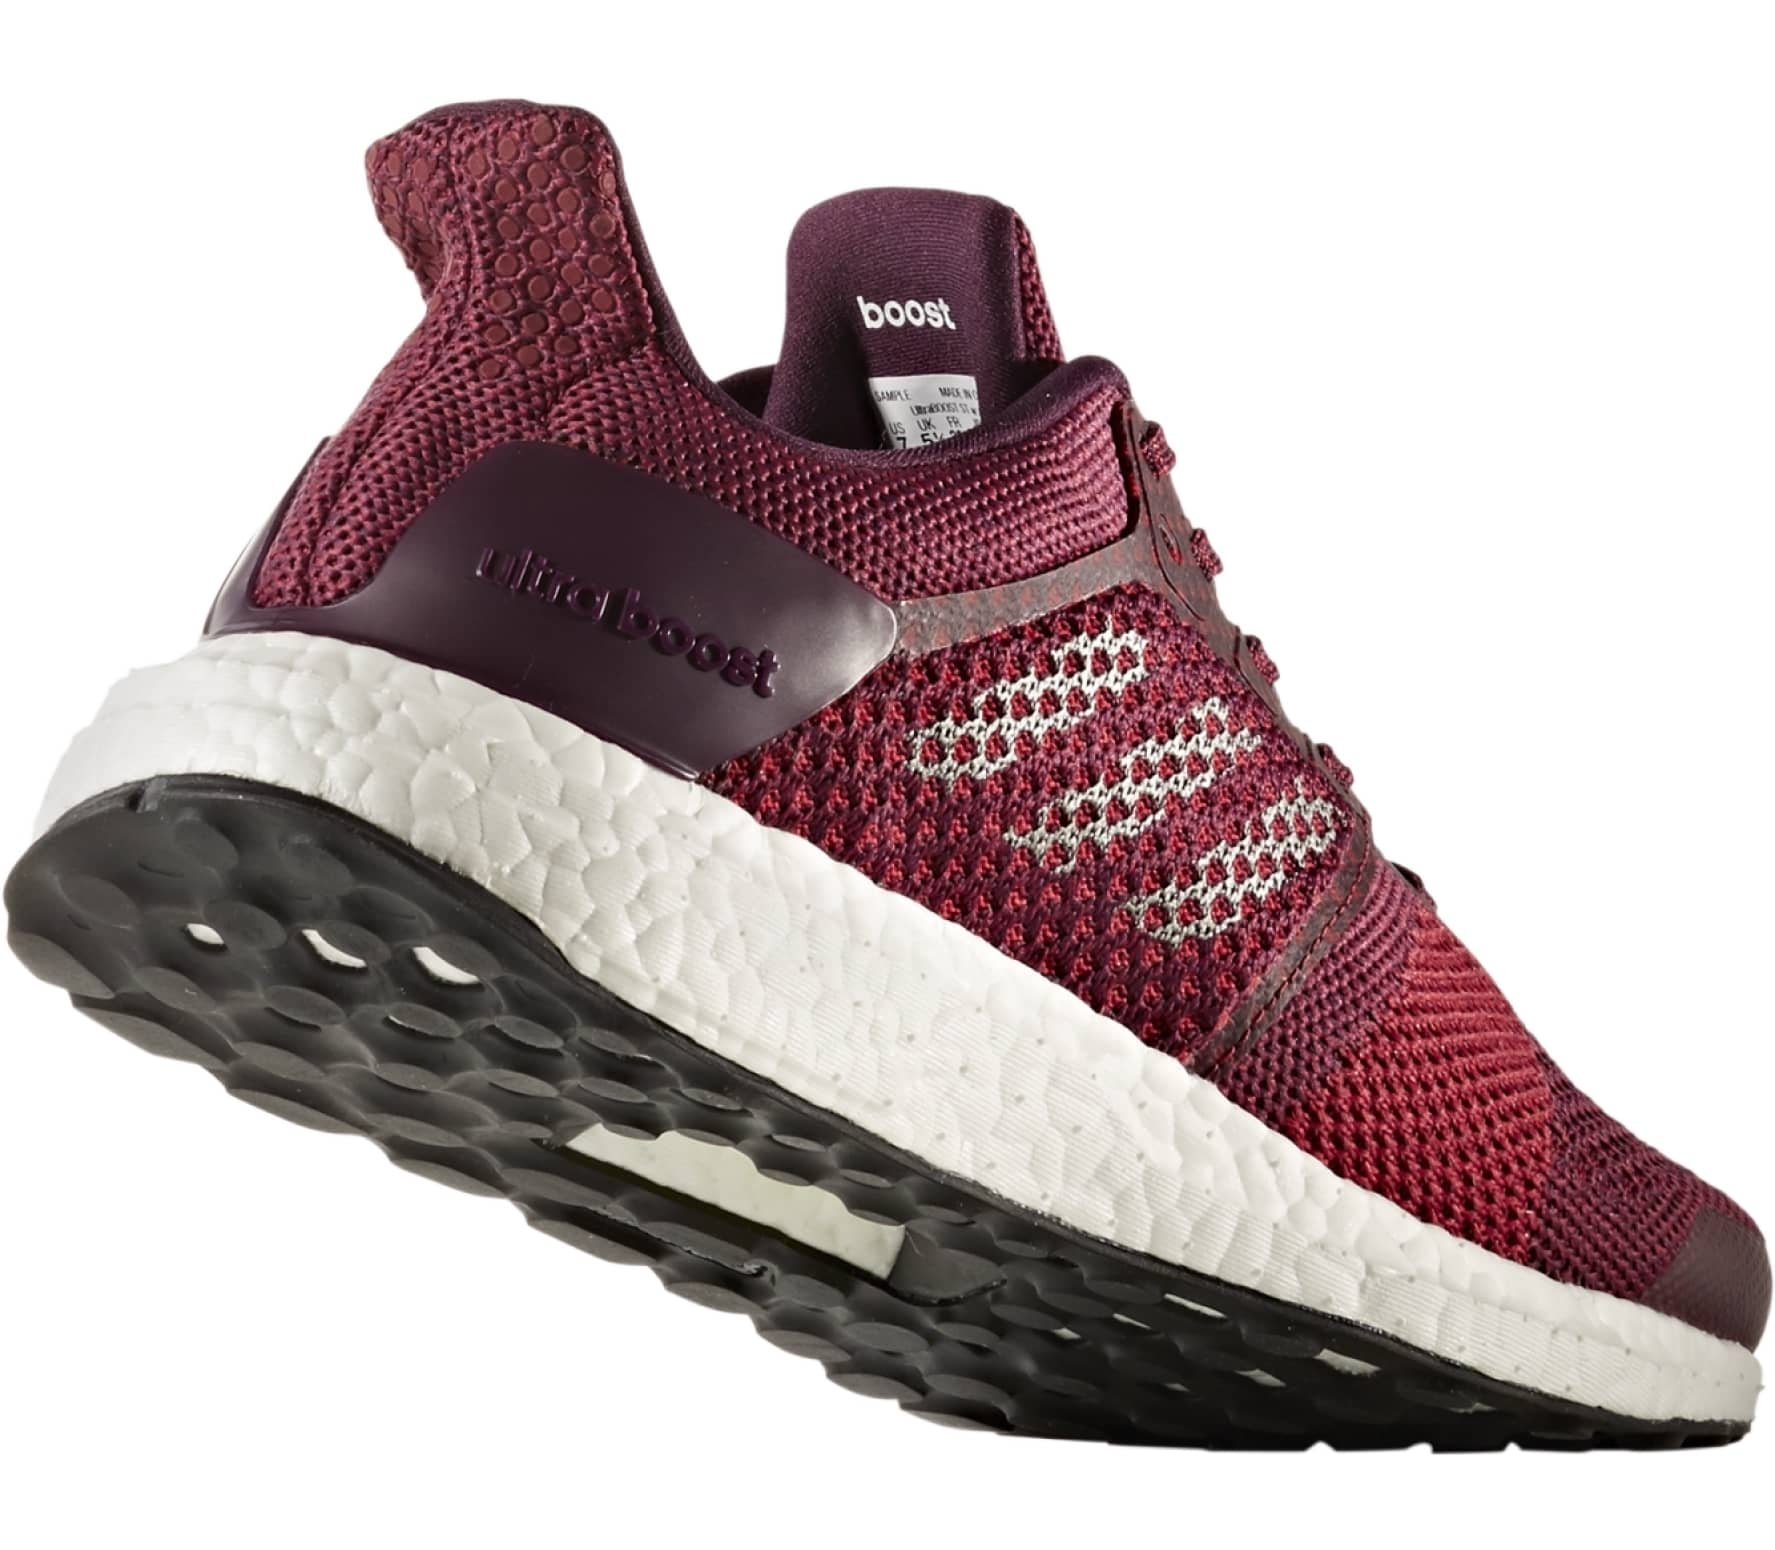 60d73b8a7a1 buy adidas ultraboost st m running shoes for men da365 e0dae  inexpensive  adidas ultra boost st womens running shoes dark red black bbefb 9c9dd